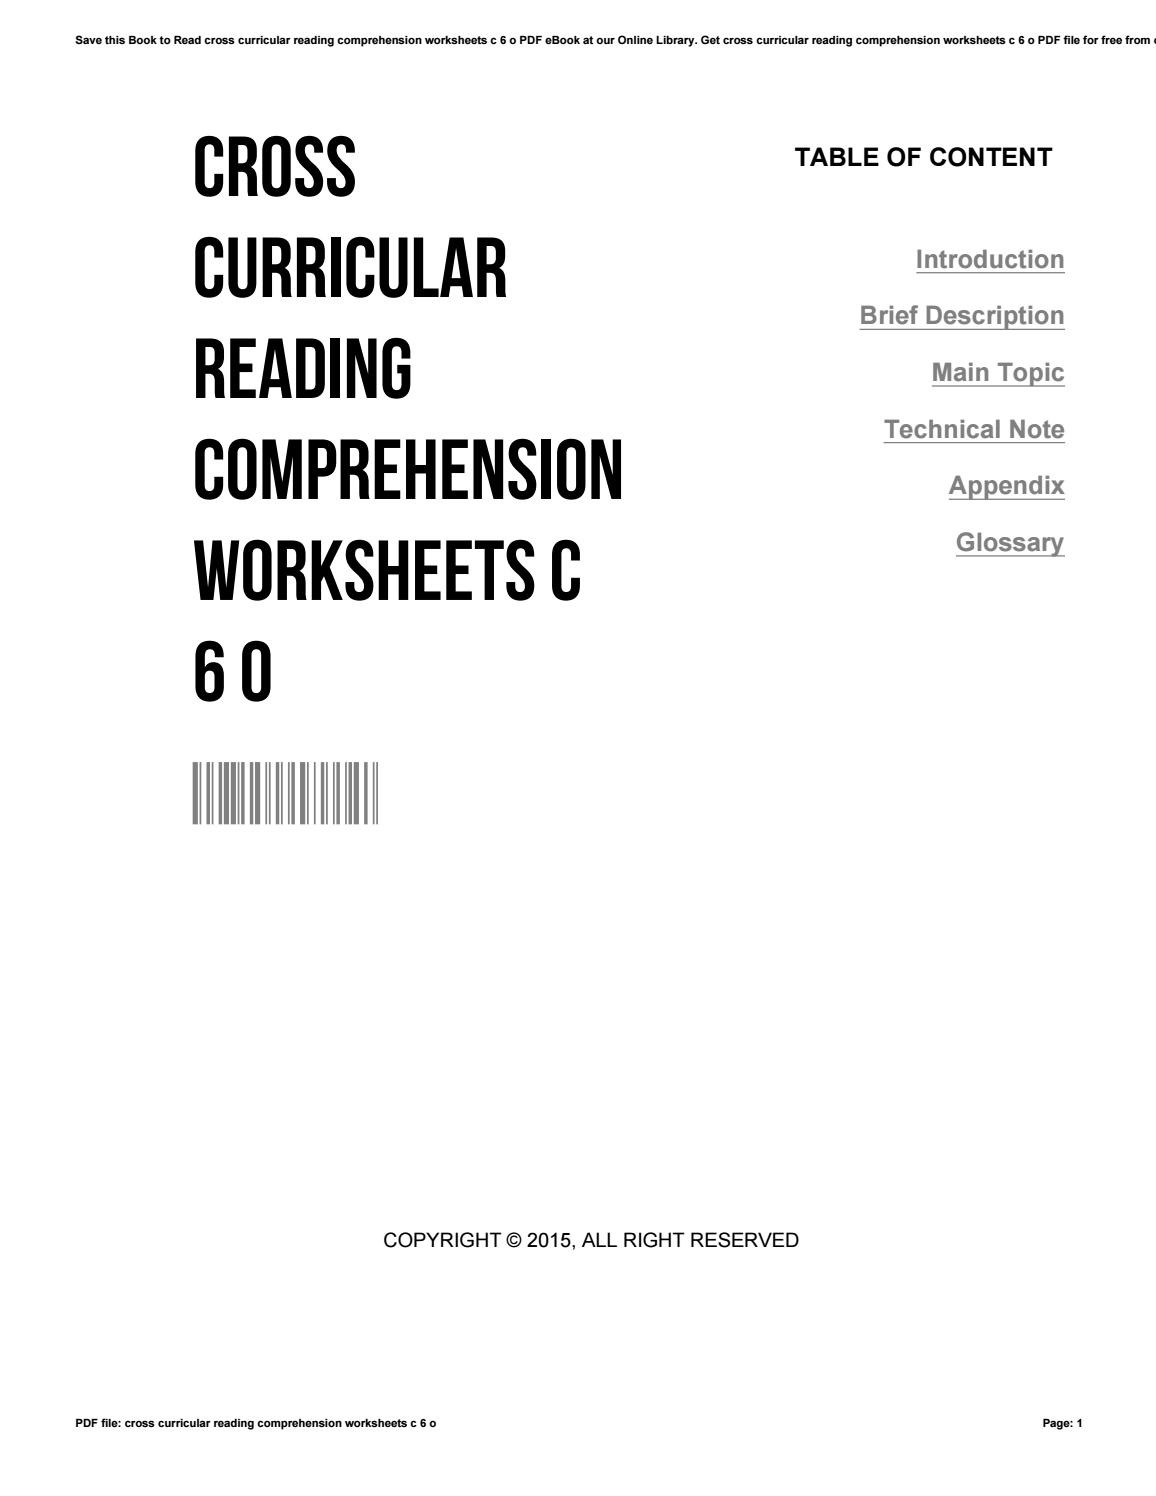 Cross Curricular Reading Comprehension Worksheets